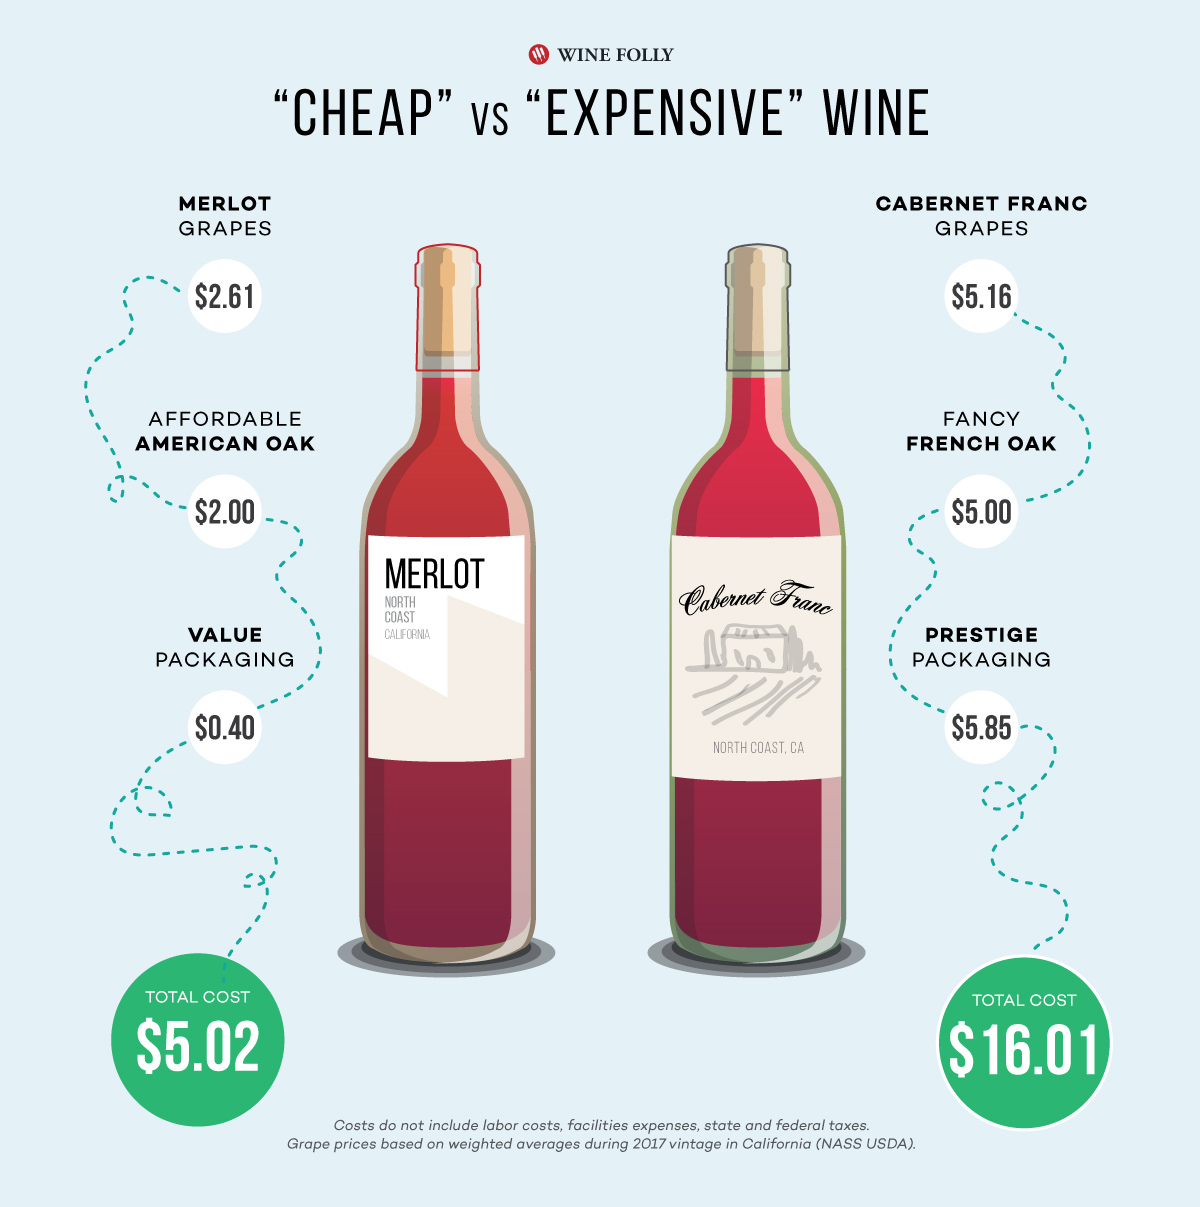 cost-of-california-merlot-vs-cab-franc-winefolly-infographic